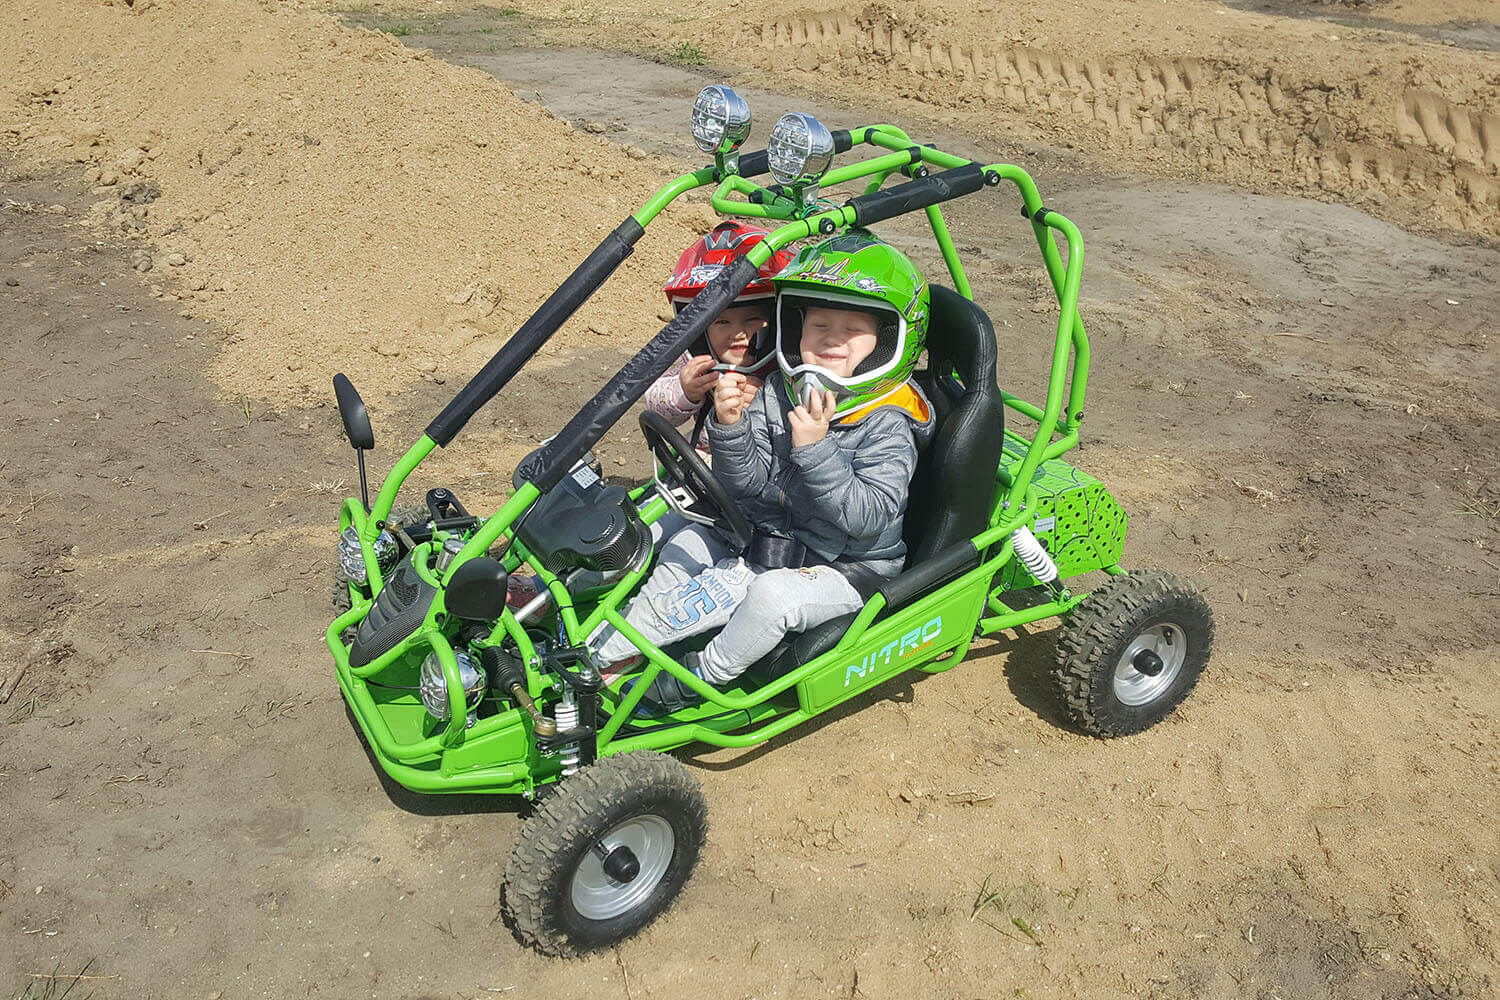 750W 60V Kids Electric Mini Buggy  from Nitro Motors, Mini Bikes Store